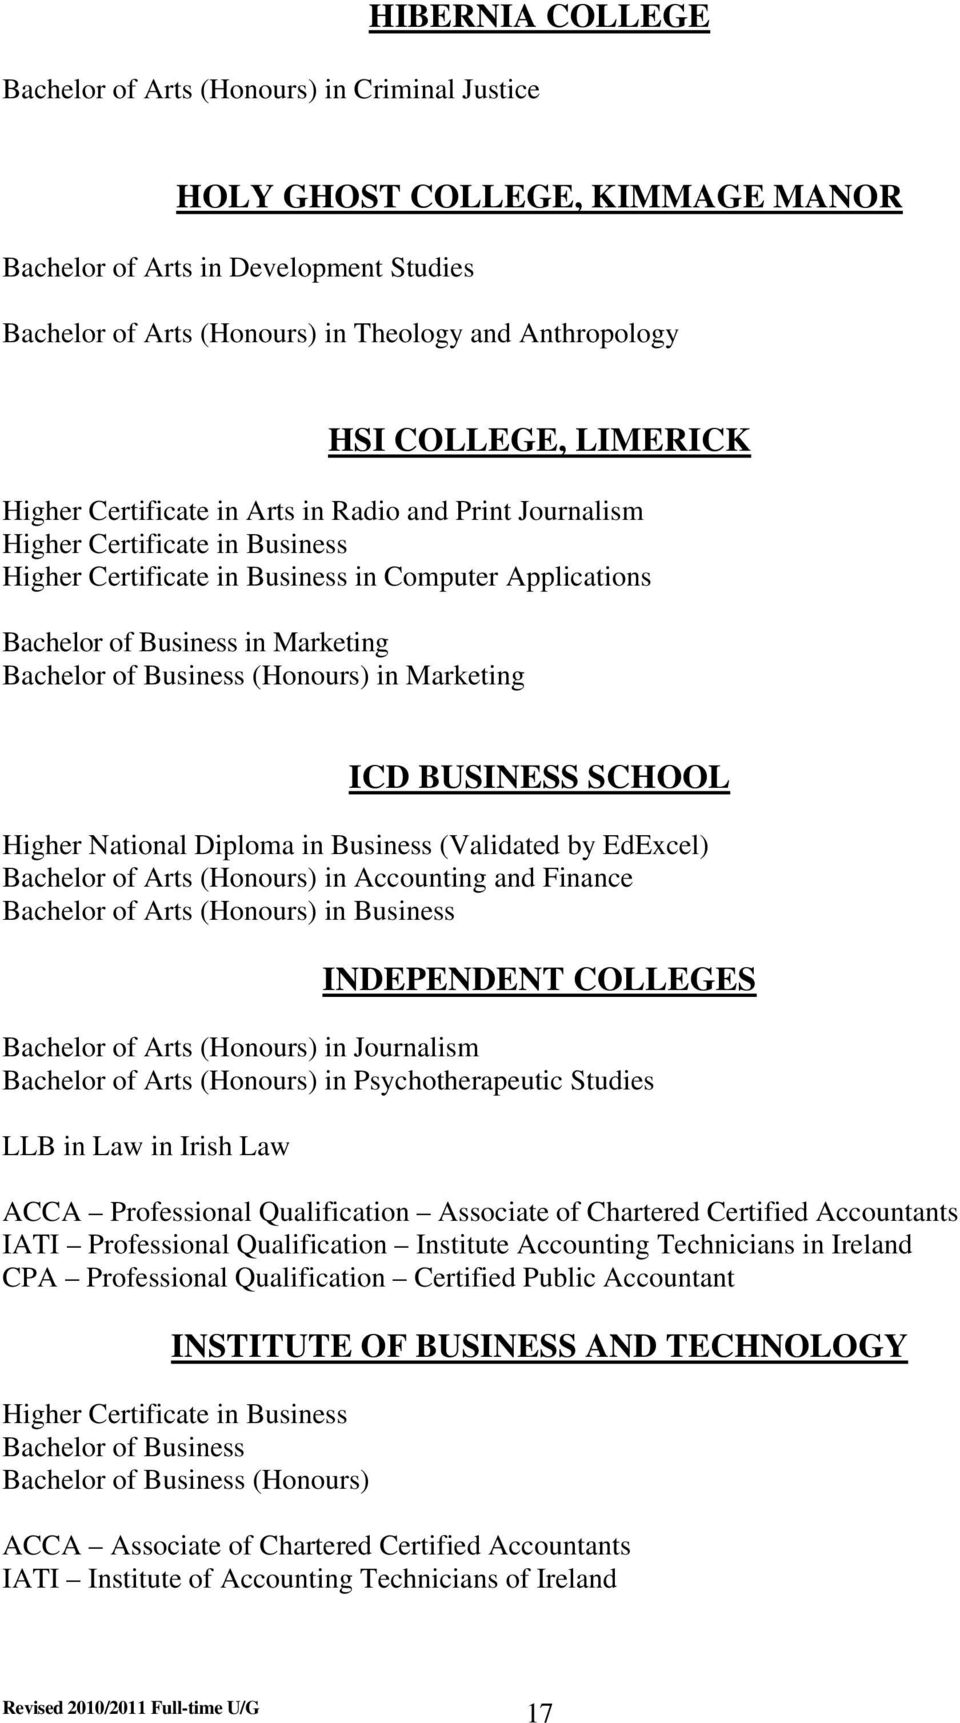 Bachelor of Business (Honours) in Marketing ICD BUSINESS SCHOOL Higher National Diploma in Business (Validated by EdExcel) Bachelor of Arts (Honours) in Accounting and Finance Bachelor of Arts